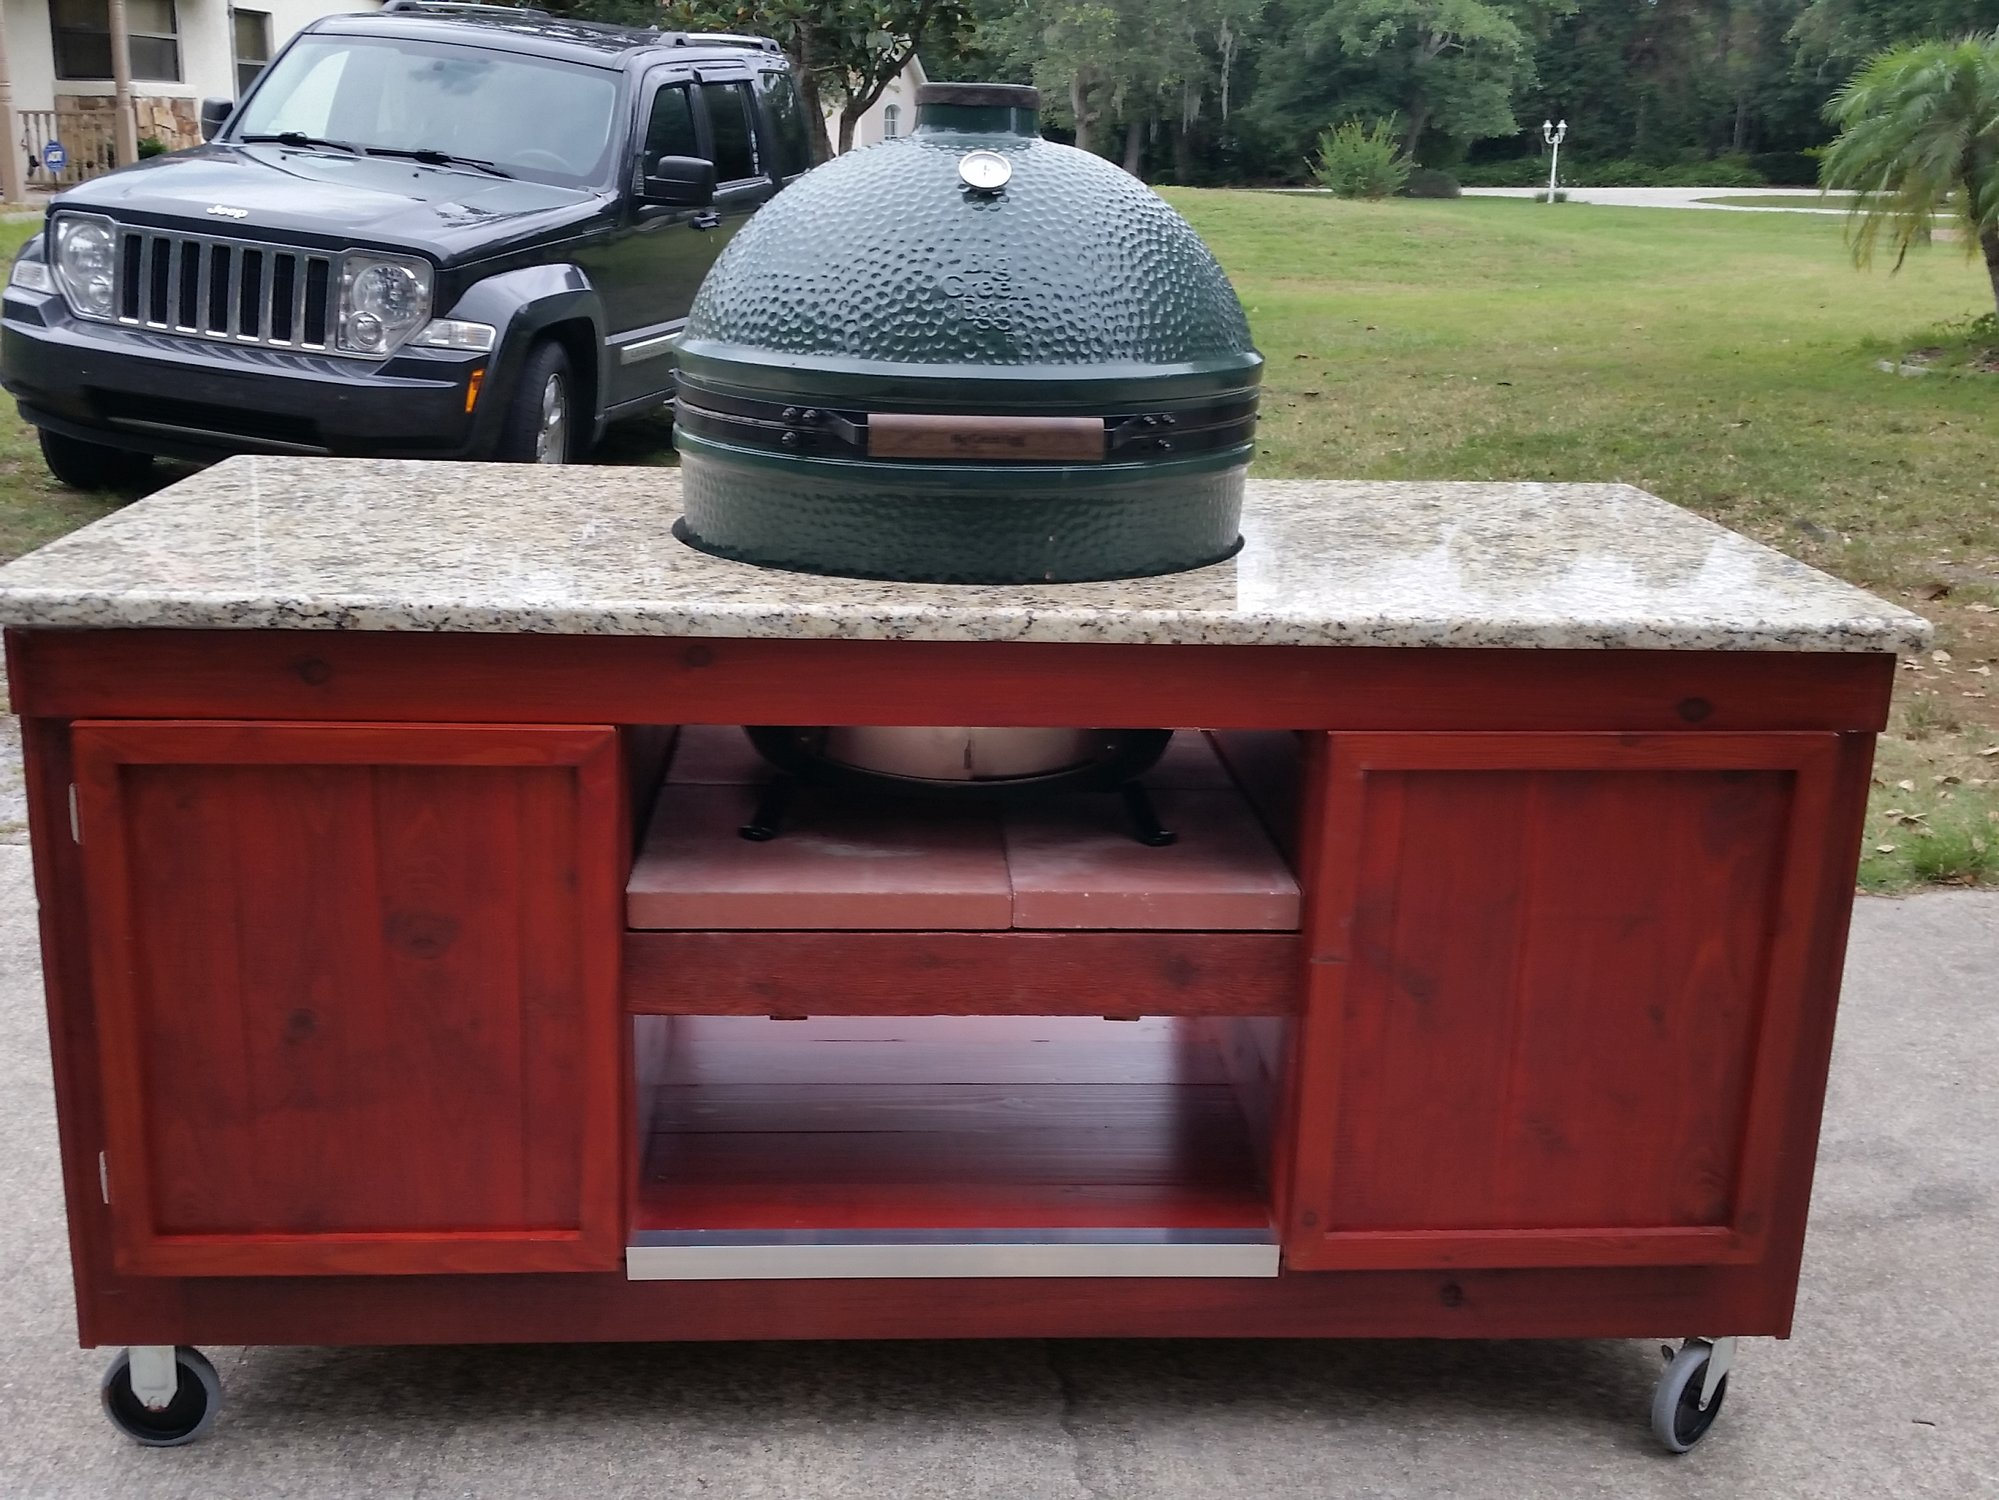 XL BGE Table Heat Resistant Material Under Grill — Big Green Egg